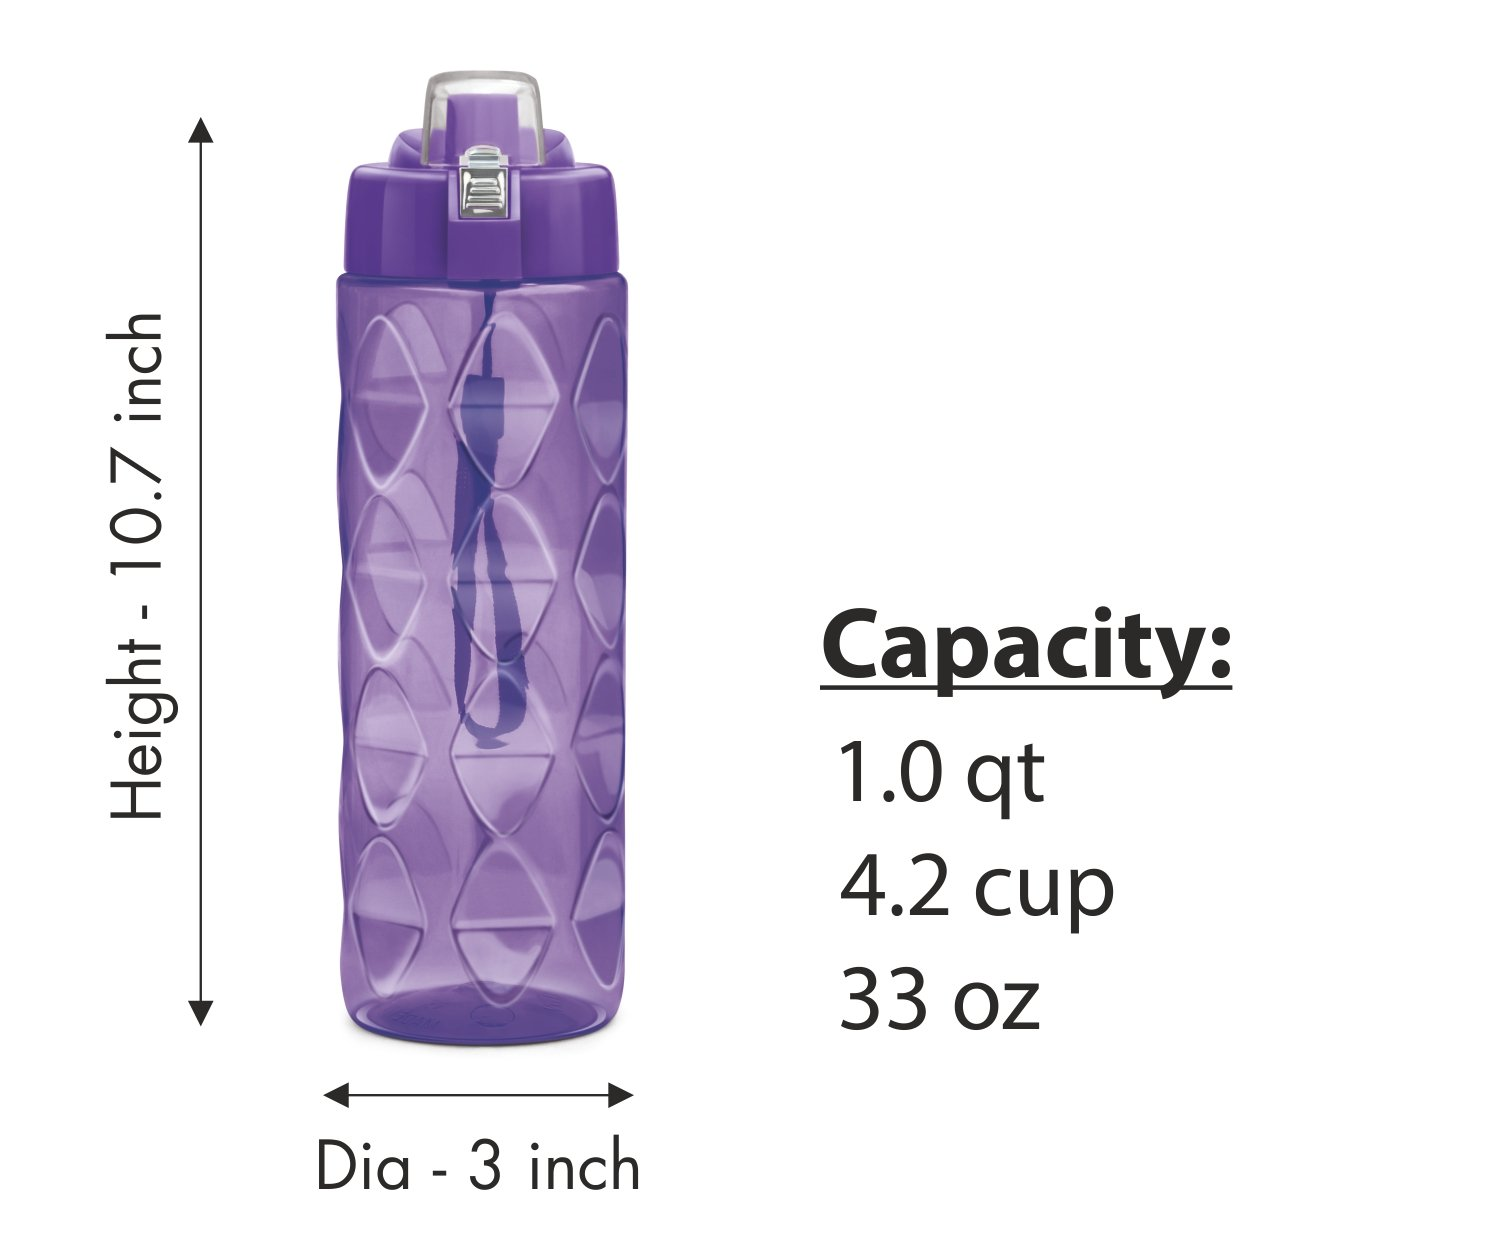 Sports Water bottle 3 pack 35 oz Large water bottle for Adults-Leakproof BPA-Free Wide-Mouth w//Strap Carry Handles For Men /& Women Cycling Camping Gym Hiking Yoga Fitness Milton